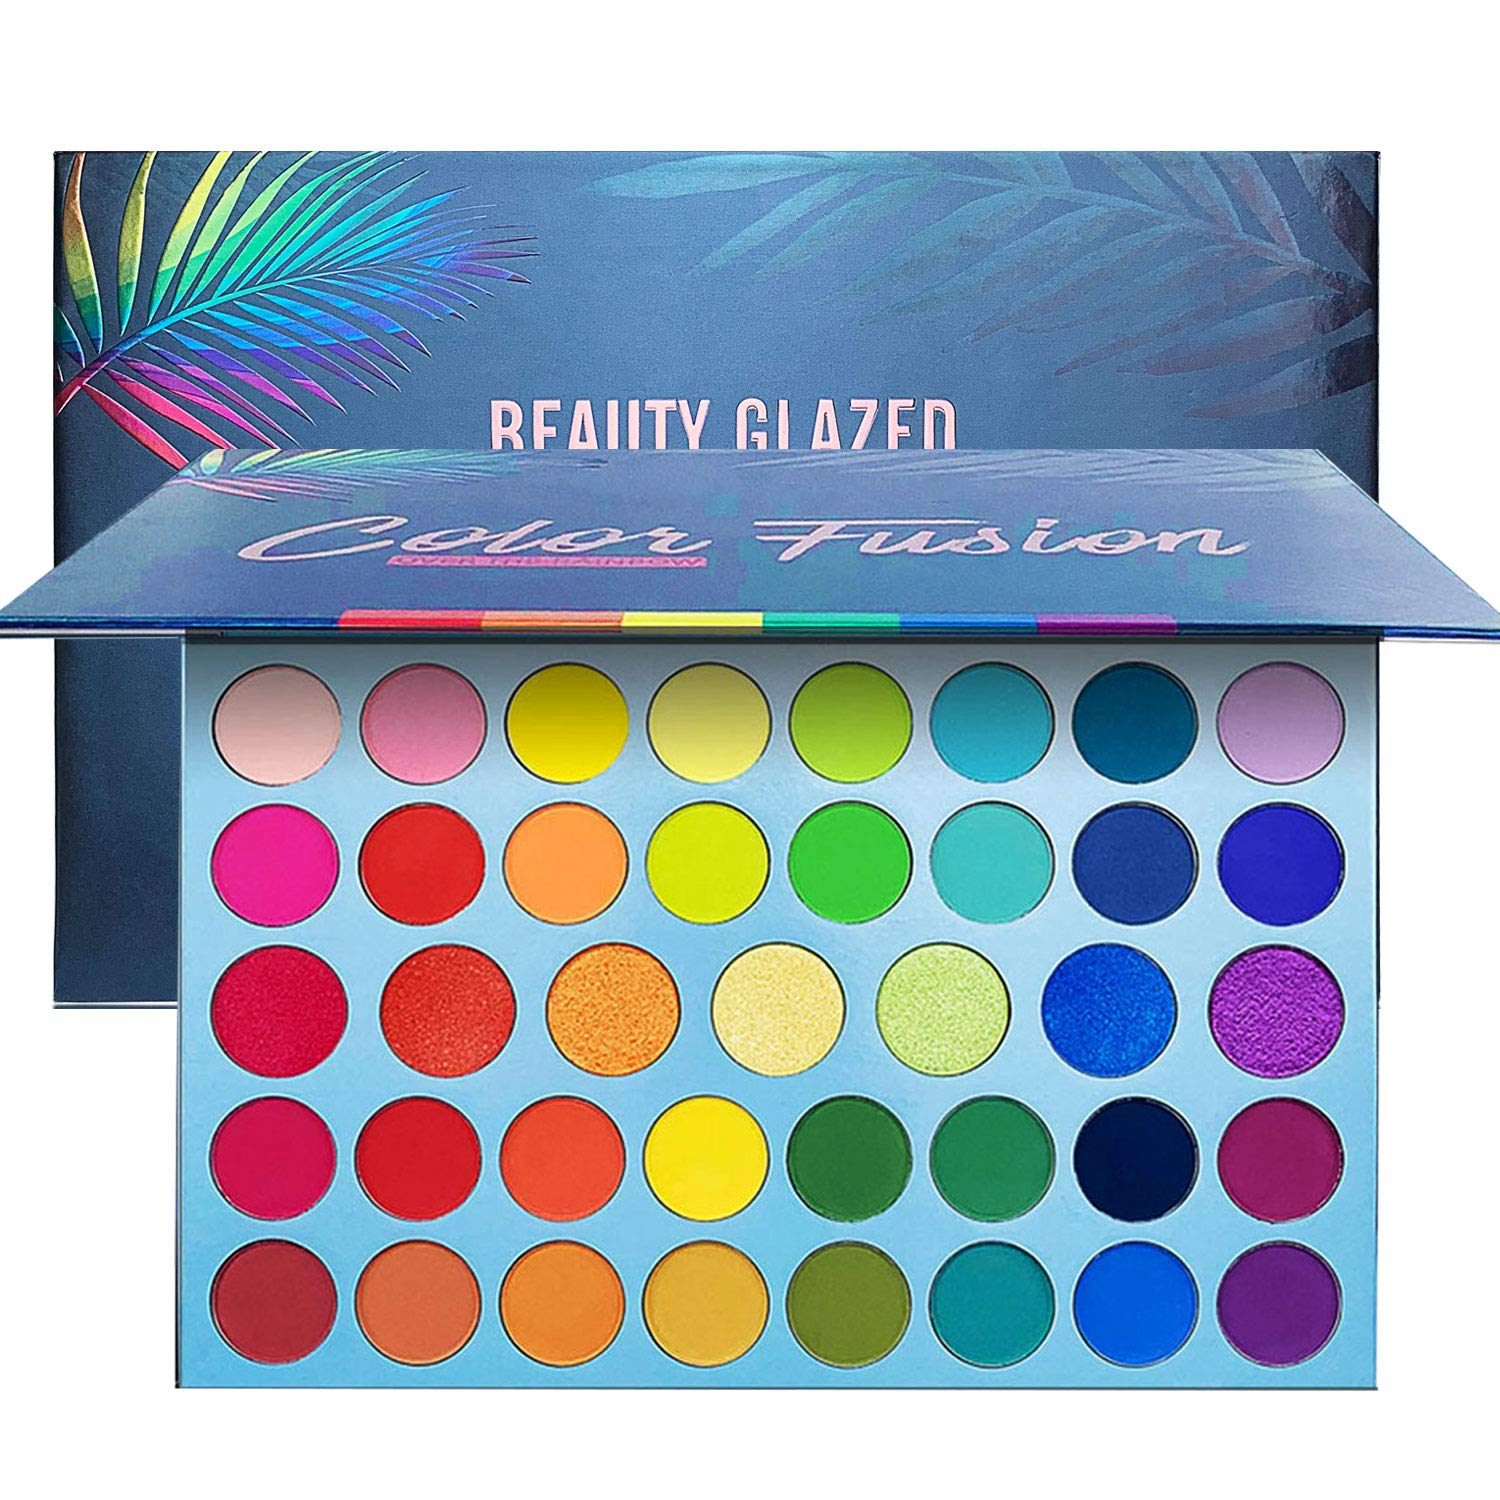 39 Color Rainbow Eyeshadow Palette – Professional Makeup Matte Metallic Shimmer Eye Shadow Palettes – Ultra Pigmented Powder Bright Vibrant Colors Shades Cosmetics Set